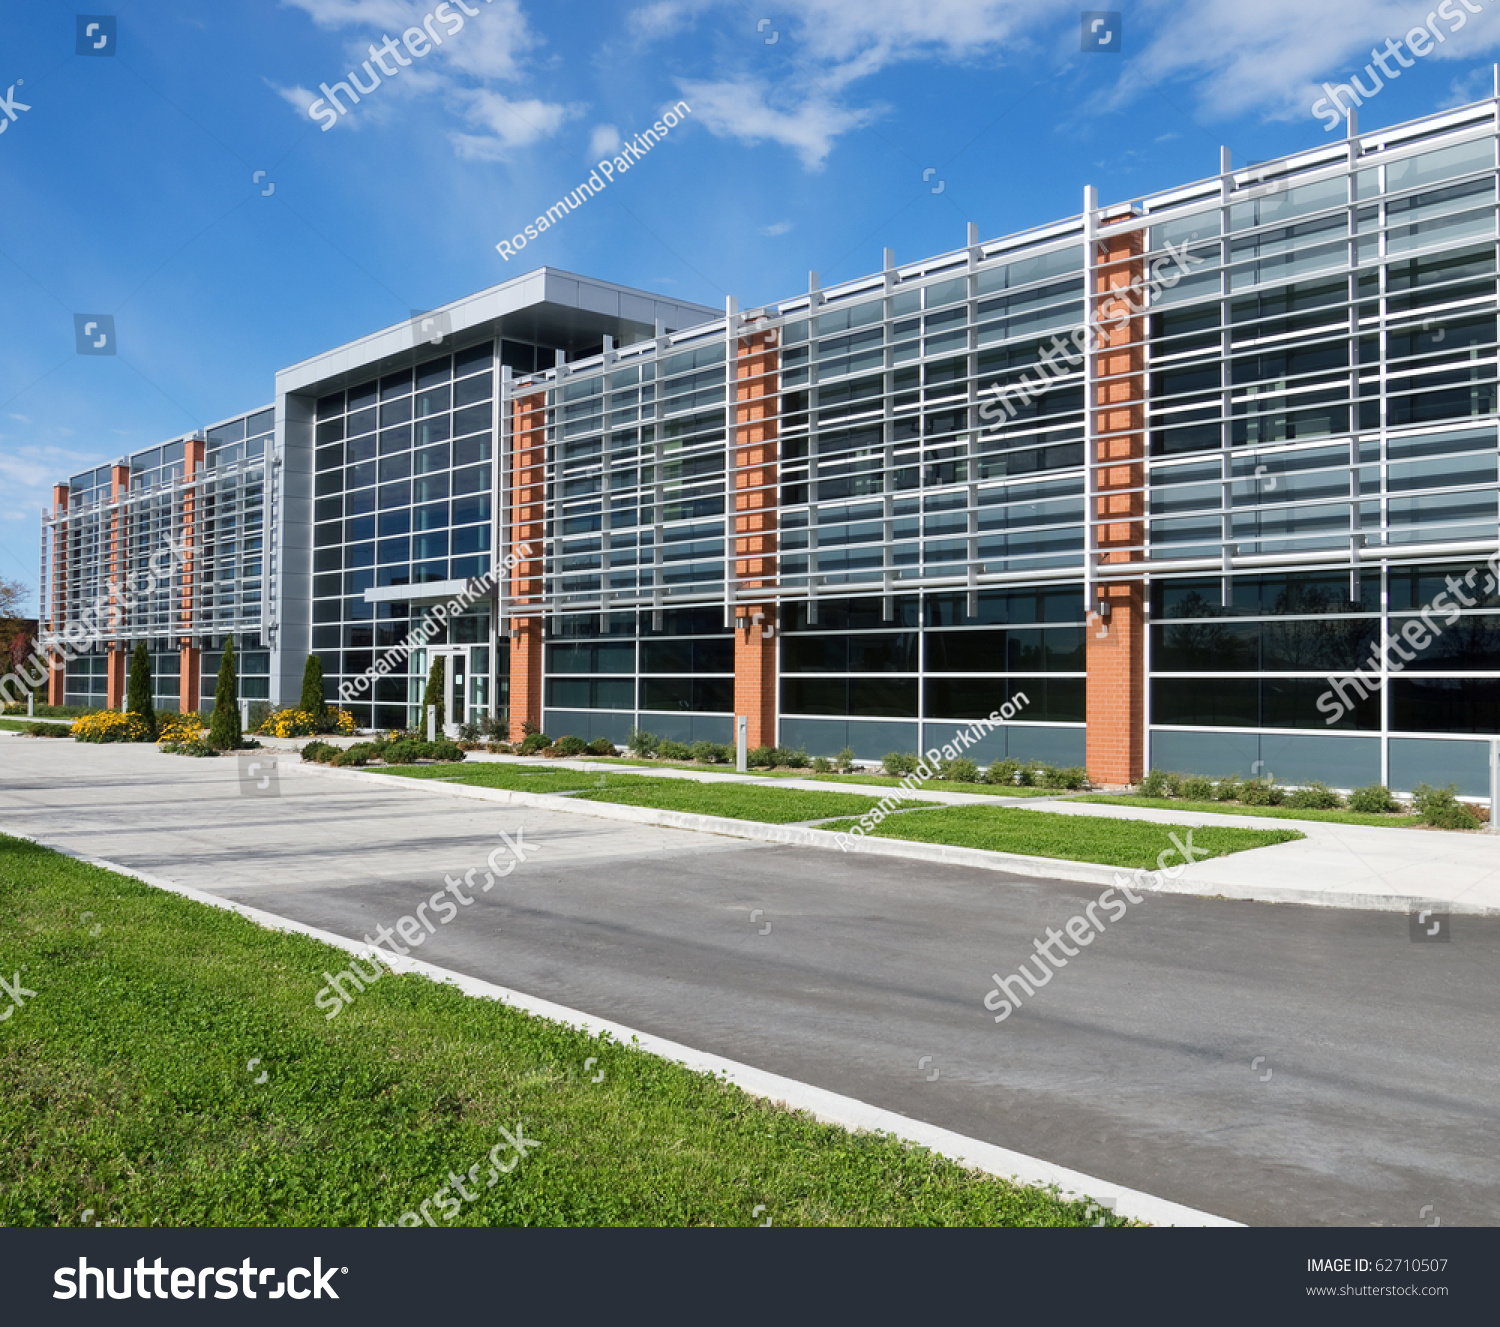 Royalty-free Modern building facade #62710507 Stock Photo | Avopix.com